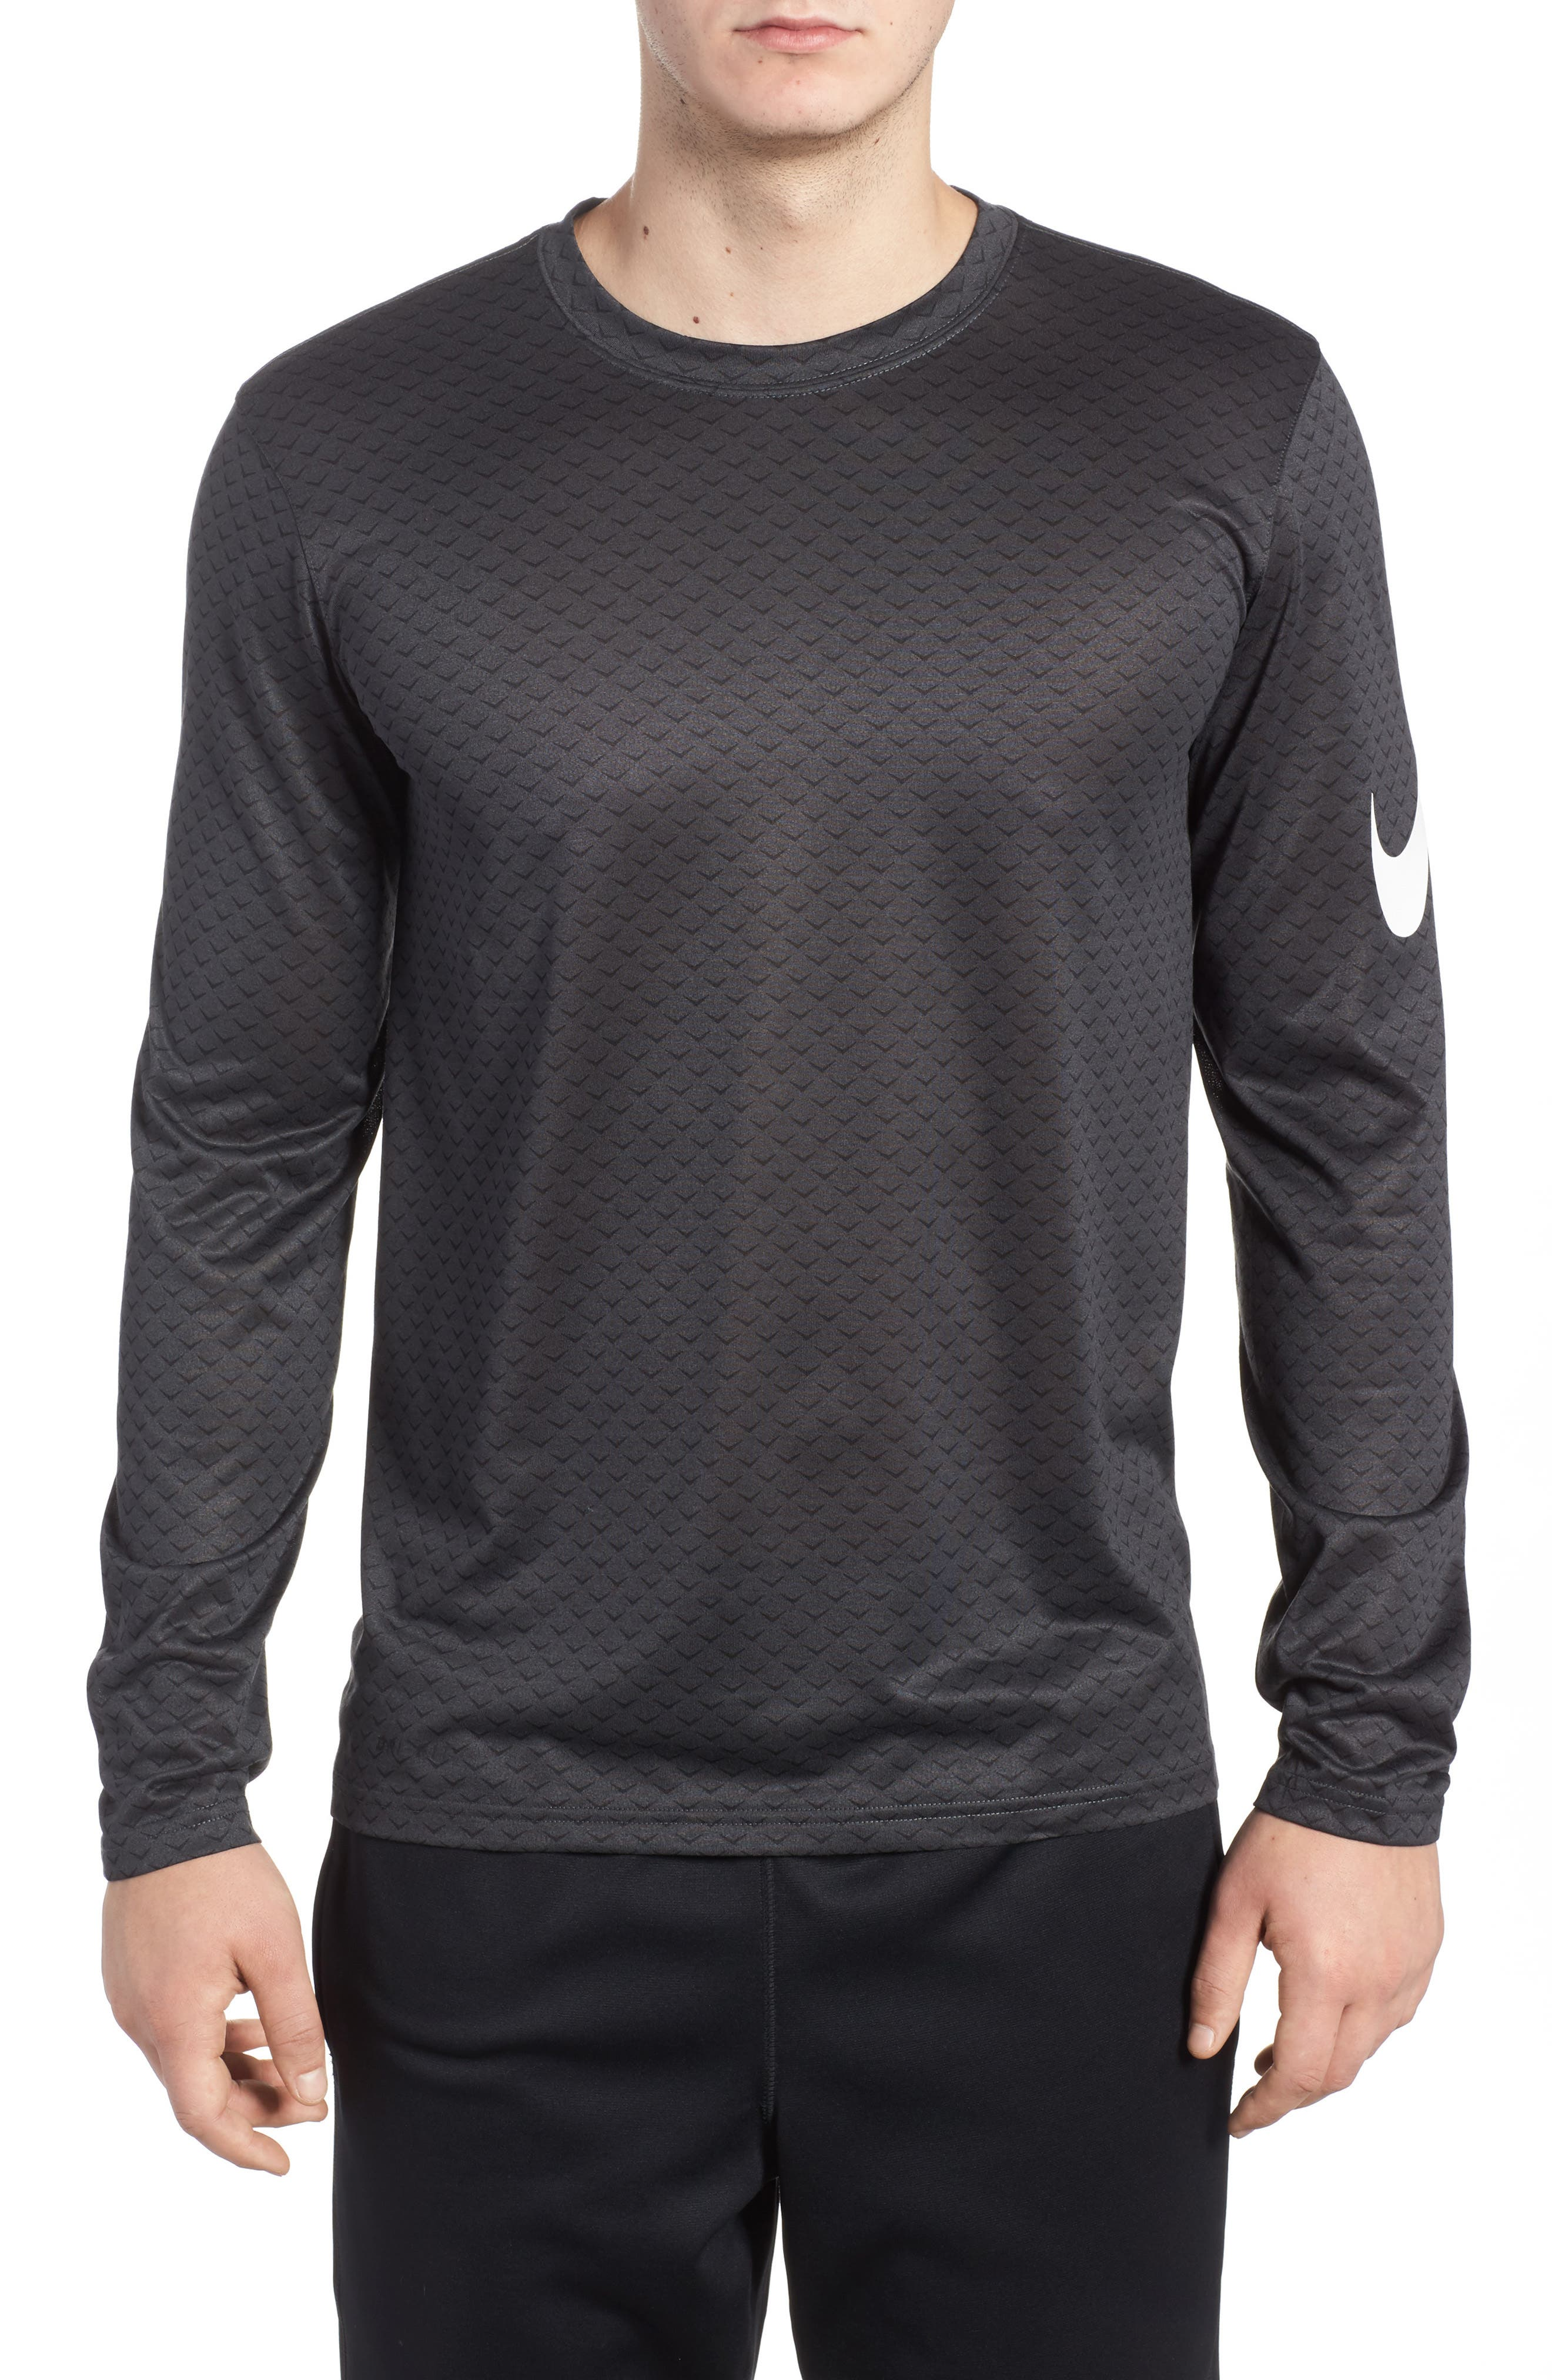 Dry Legend Training T-Shirt,                         Main,                         color, 060